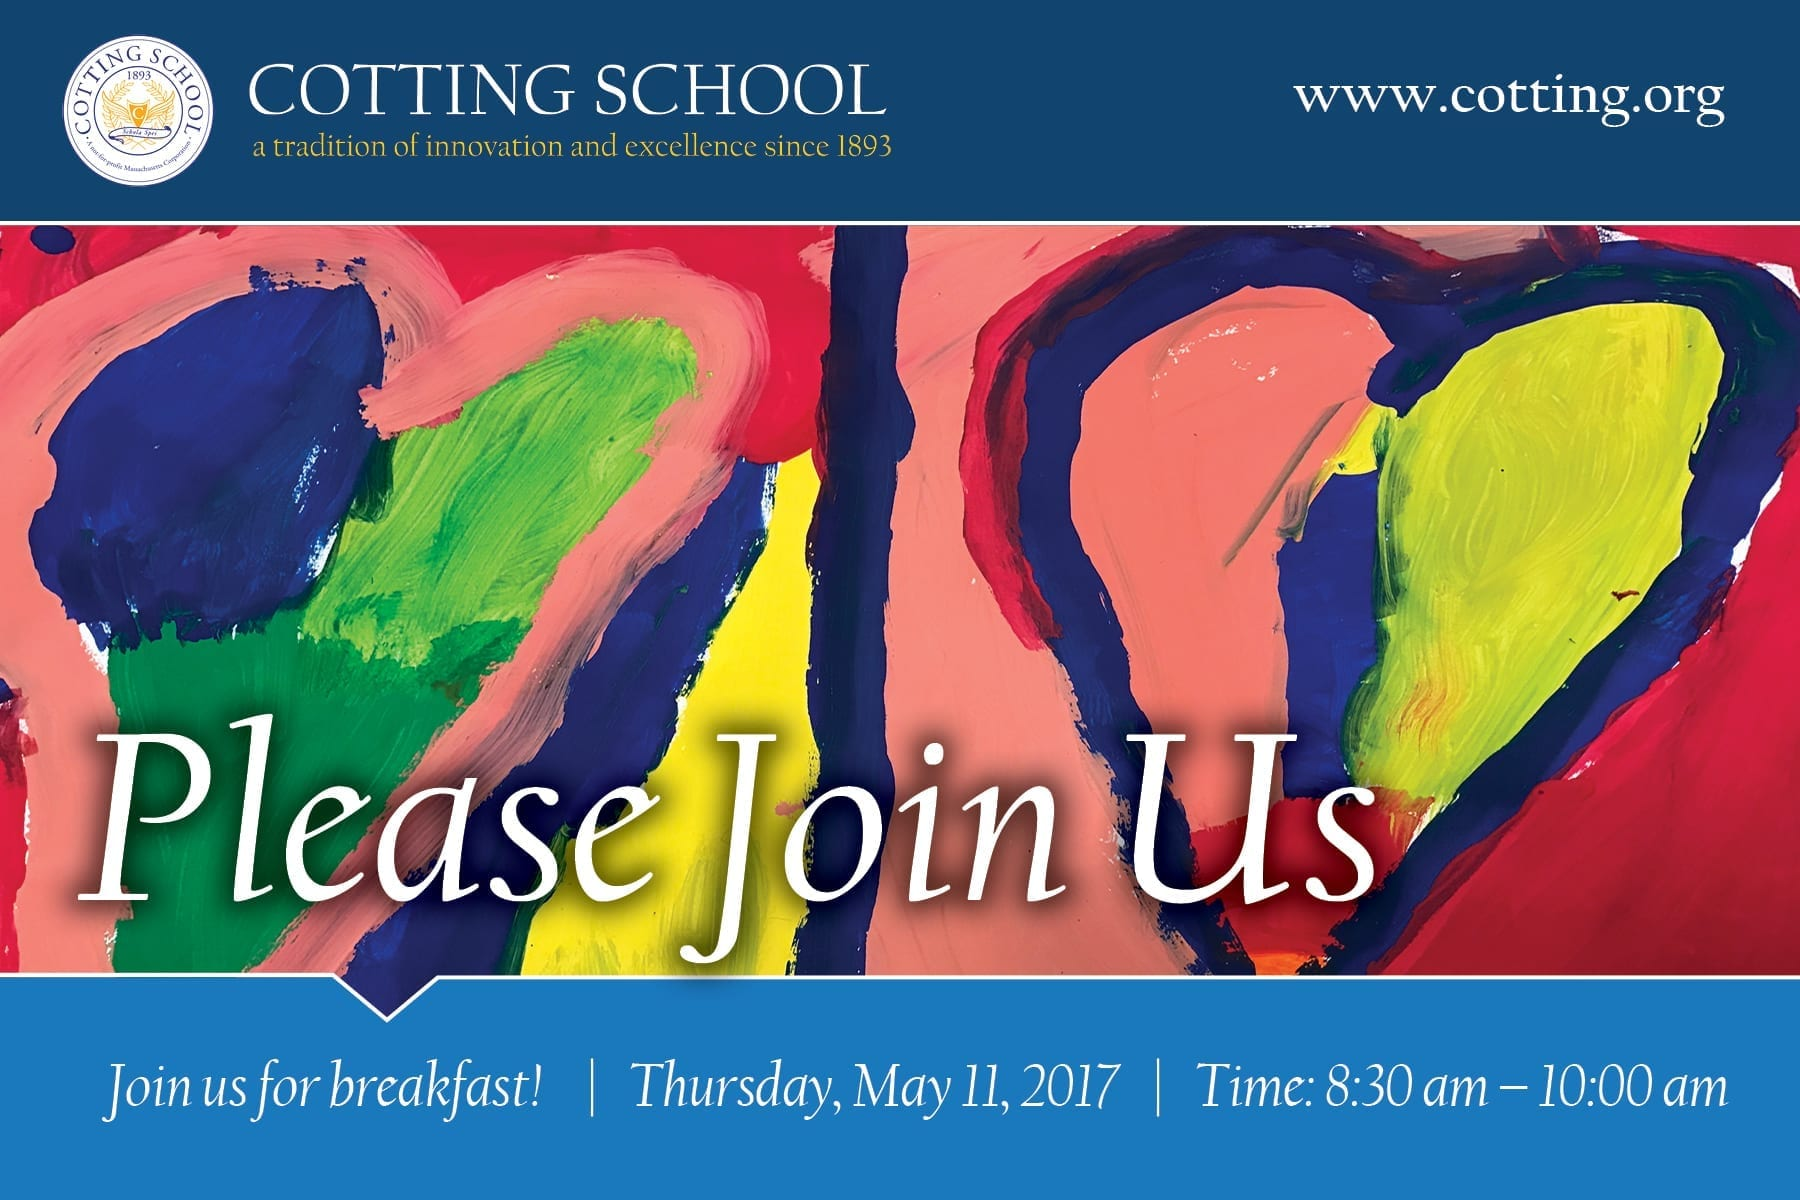 Please join us! Breakfast for professionals on Thursday, May 11, 2017